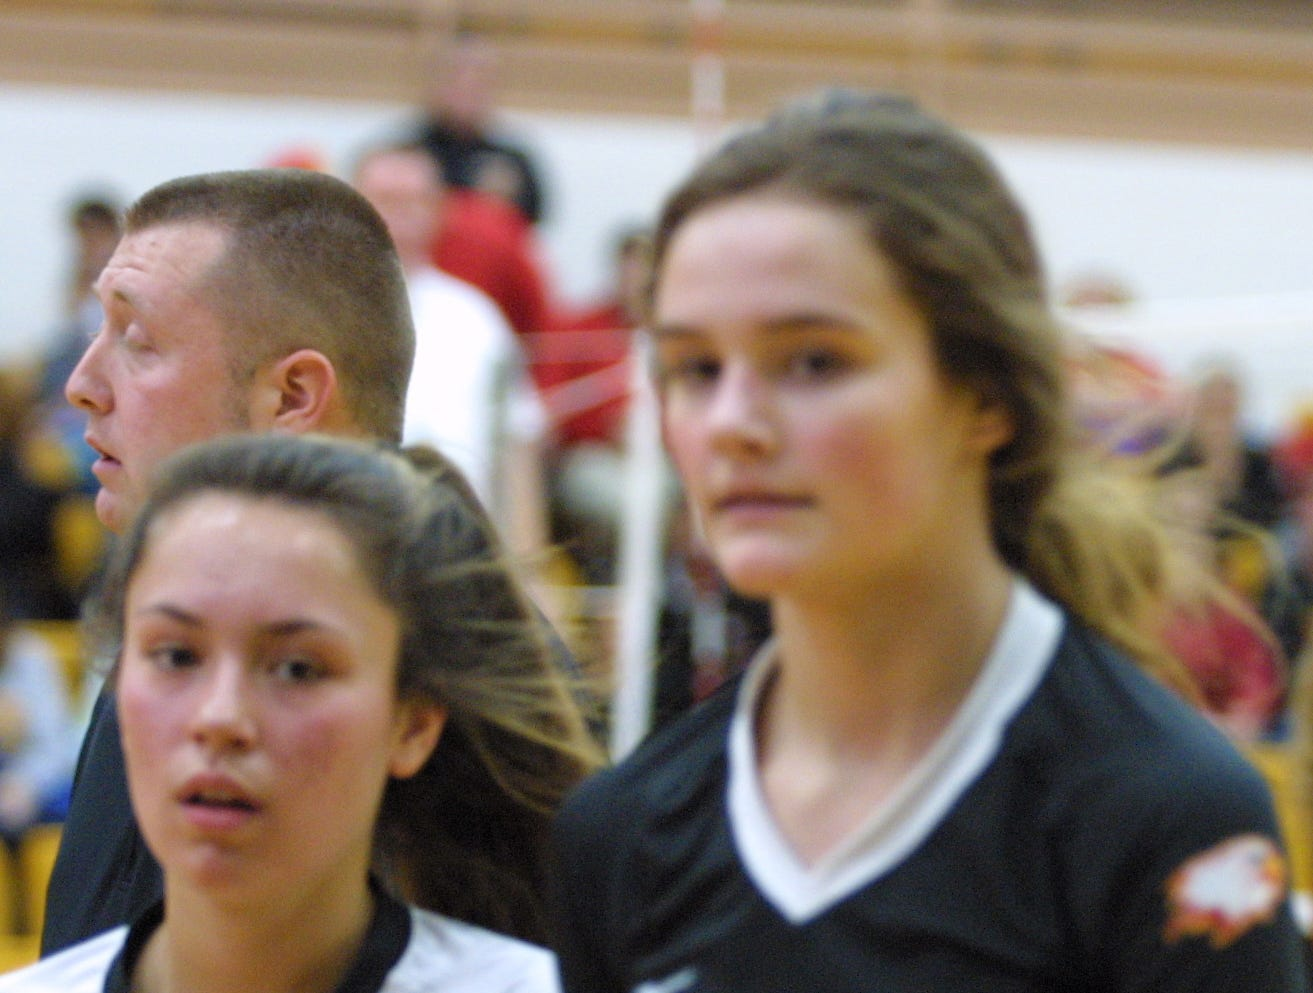 Bishop Fenwick players Bella DeSalvo (13) and Elizabeth Hoerlein (7) walk off after a lost point against Roger Bacon in the regional final at Butler High School, Saturday, Nov. 3, 2018.